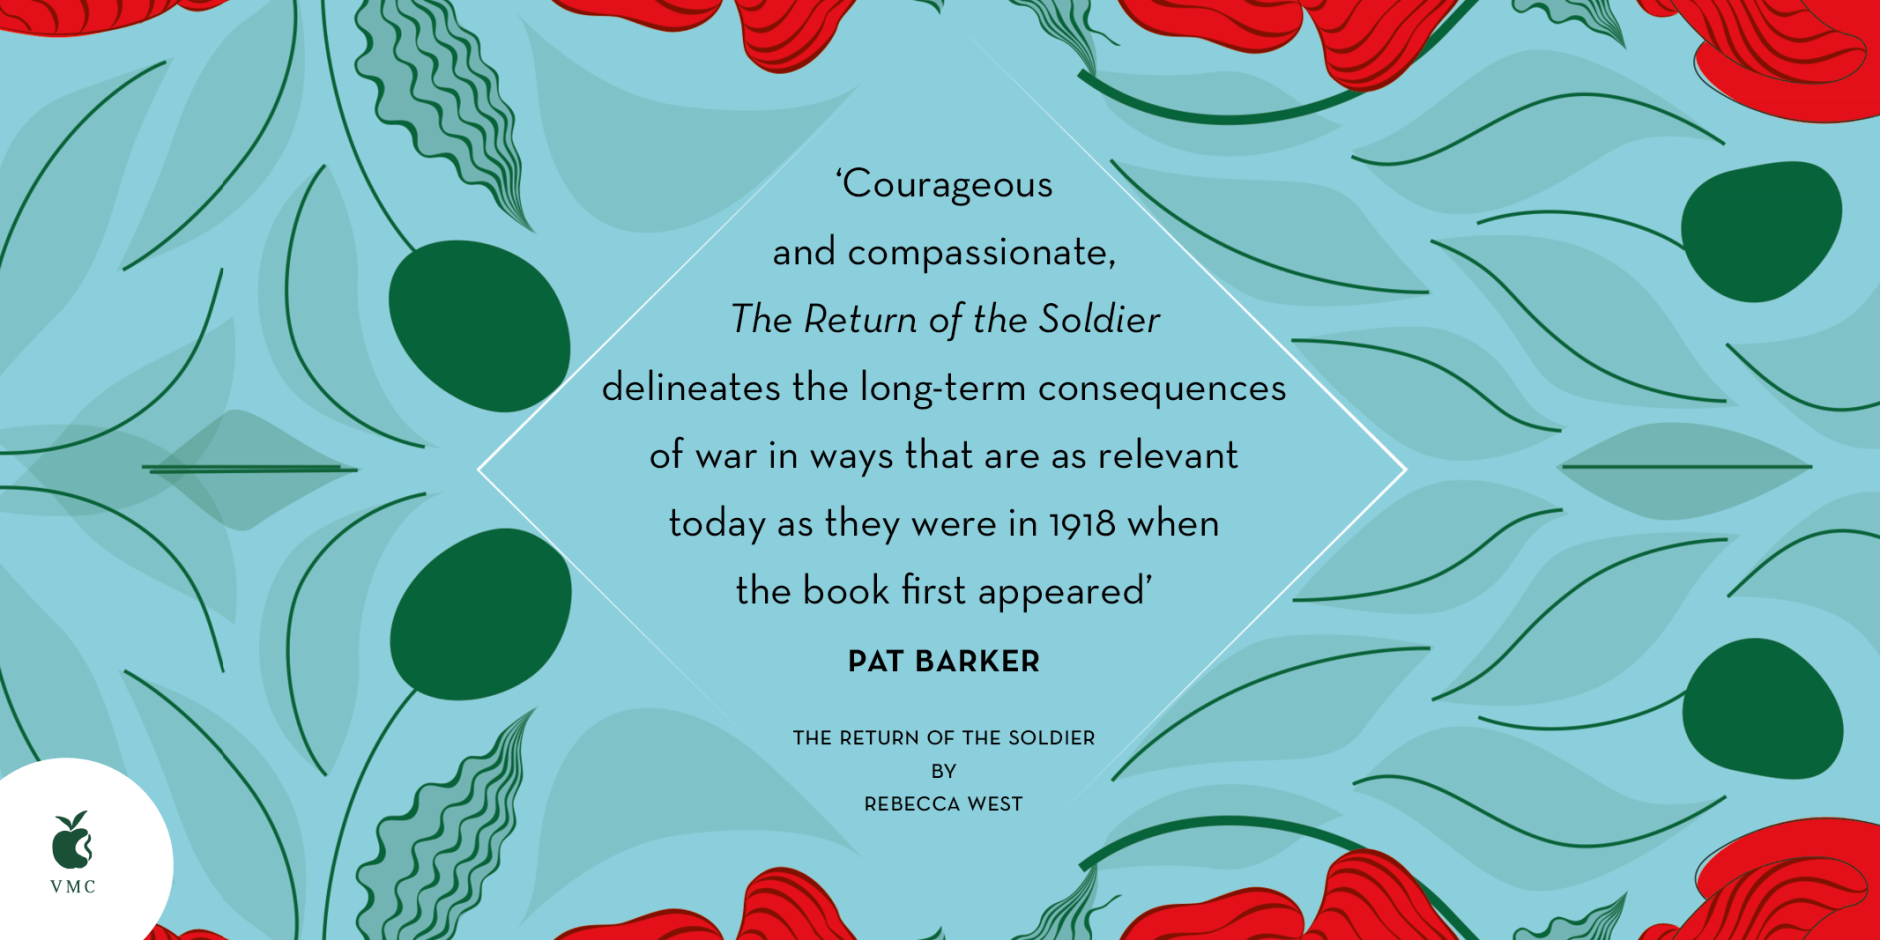 Pat Barker on The Return of the Soldier